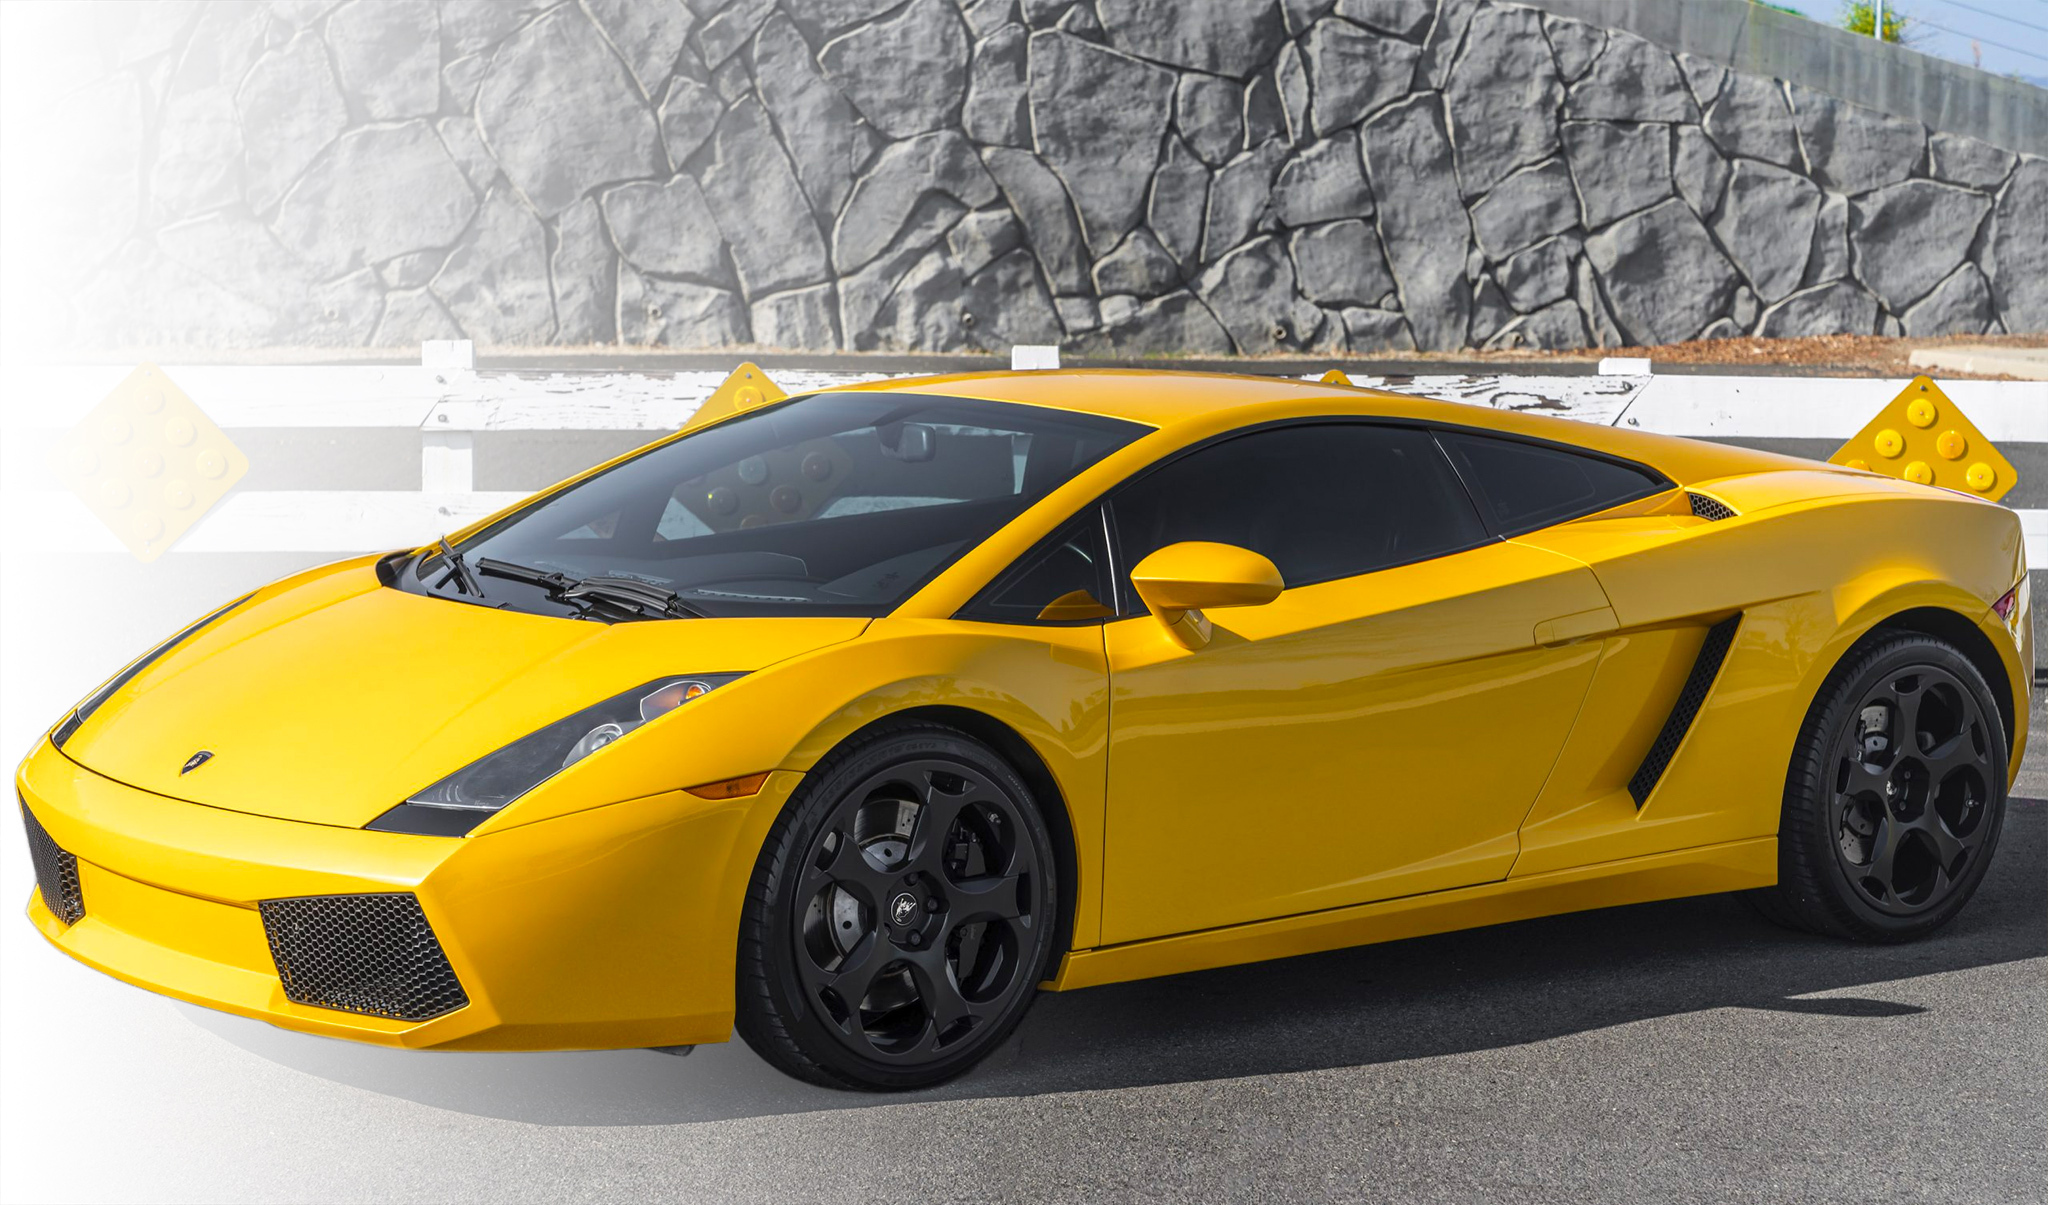 @OCMOTIVATOR'S BRAD PEARSON LEASED HIS LAMBORGHINI WITH PFS